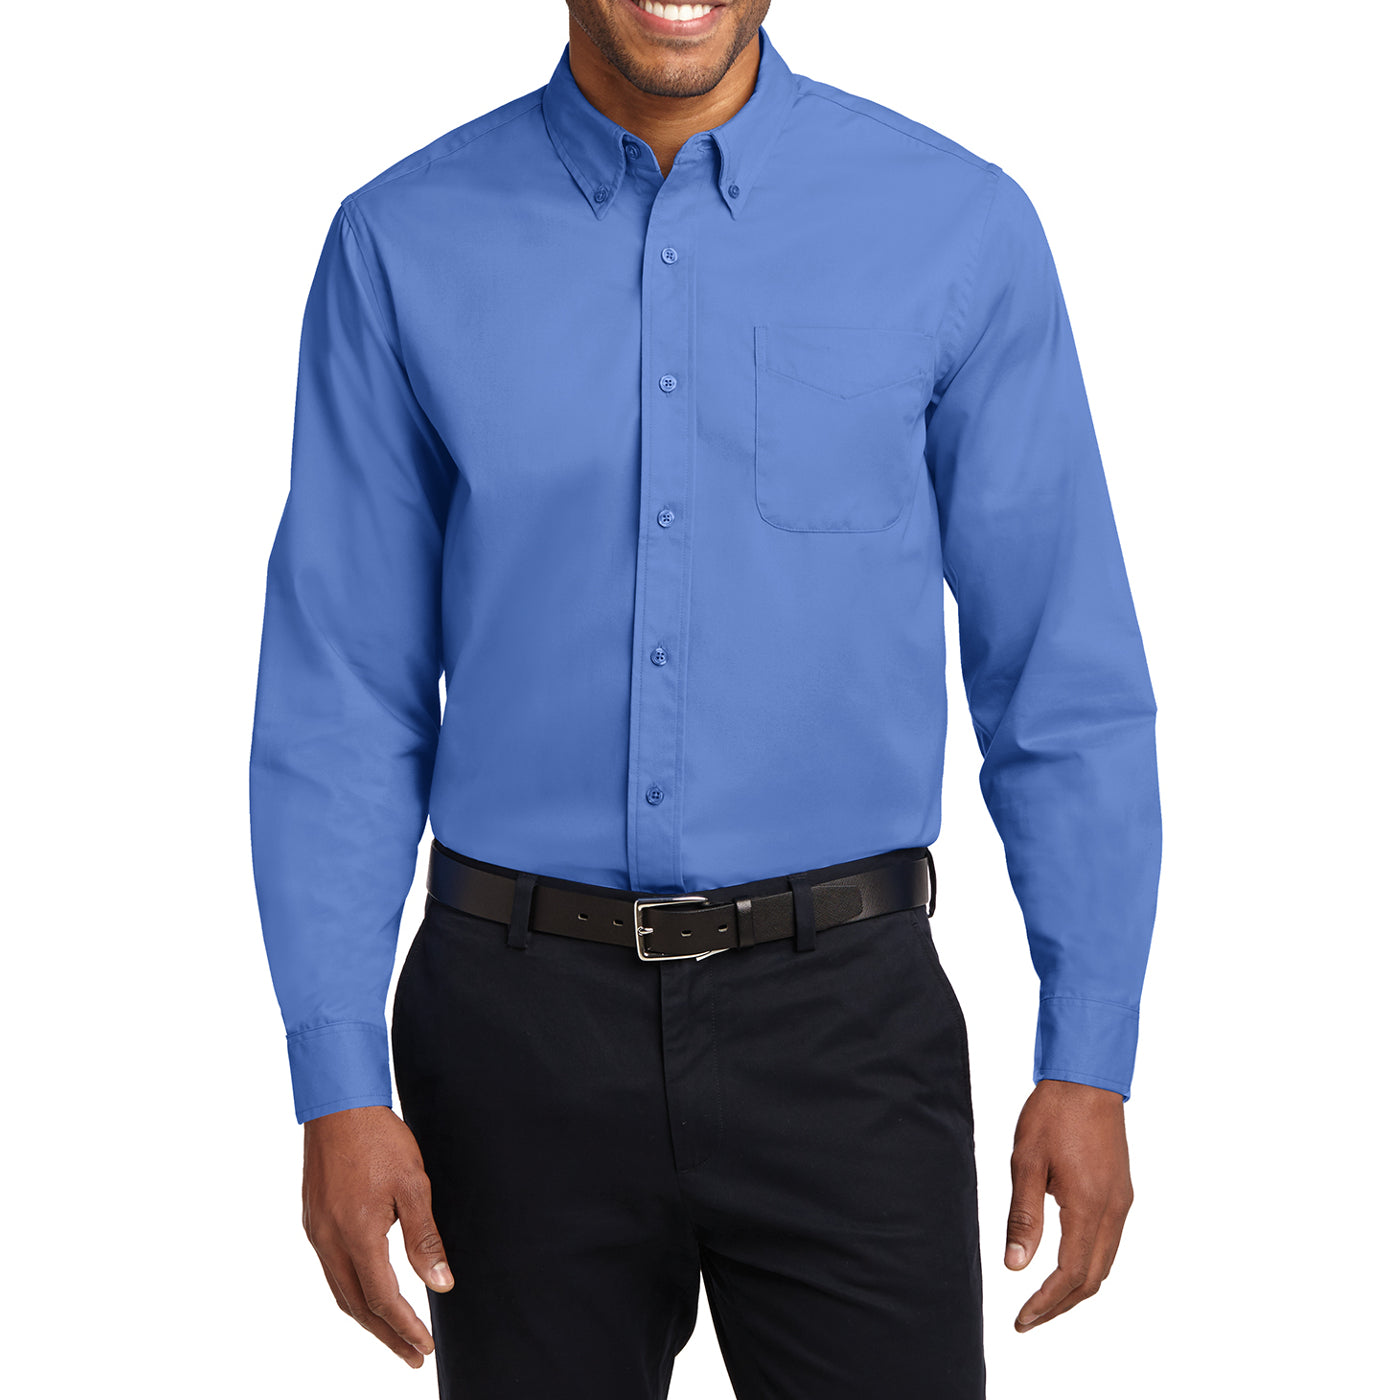 Men's Long Sleeve Easy Care Shirt - Ultramarine Blue - Front